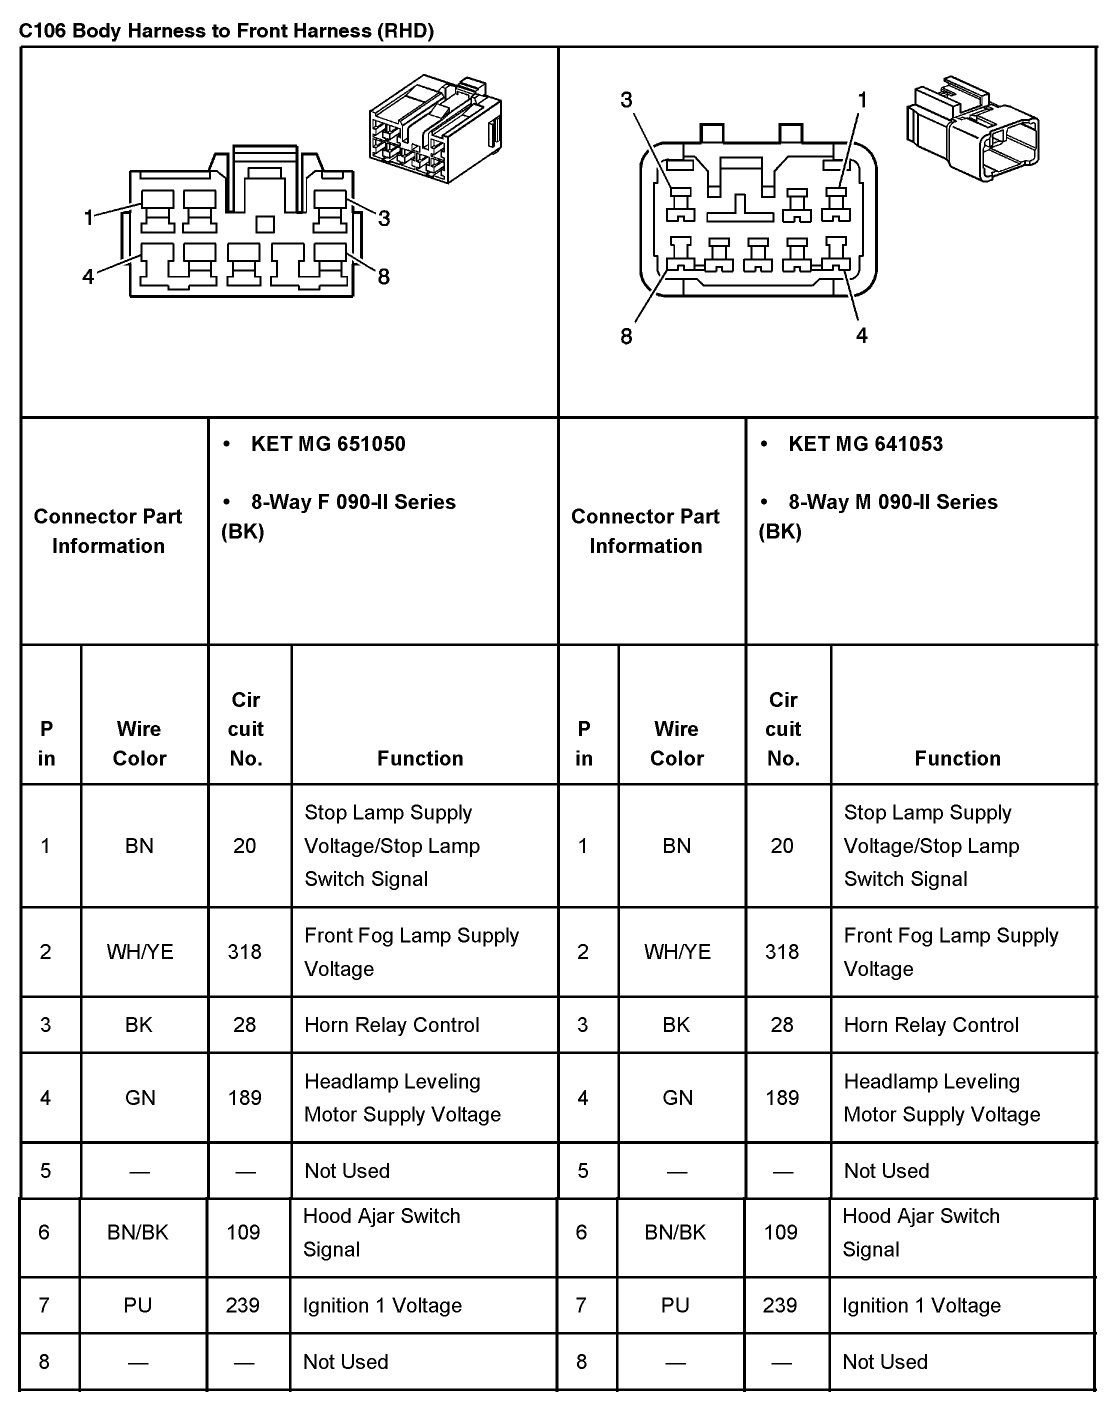 2005 chevrolet equinox wiring diagram push switch aveo master connector list and diagrams